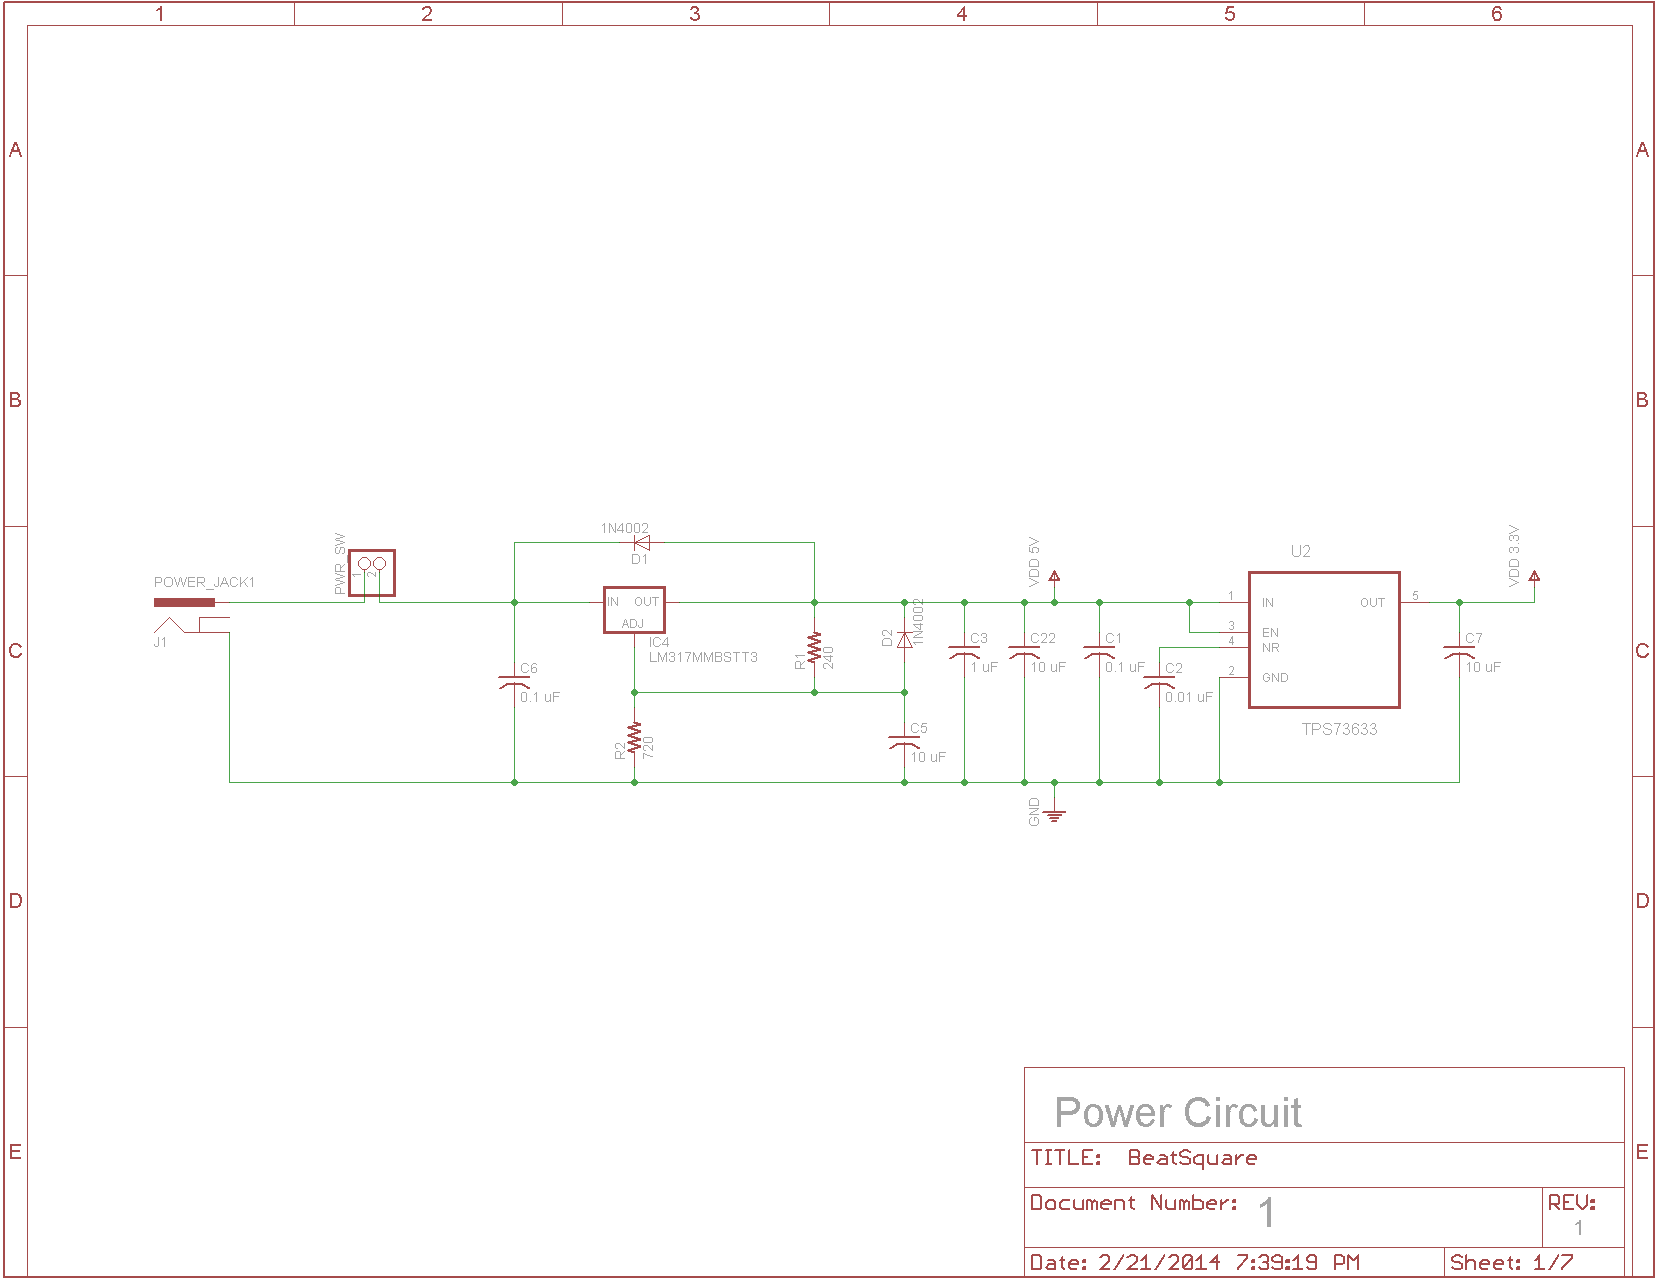 Lab Notebook Kevin Meyer Settling Lowpass Filter Schematic Diagram Circuit Wiring Diagrams All Drawings Done In Eagle 650 Editor